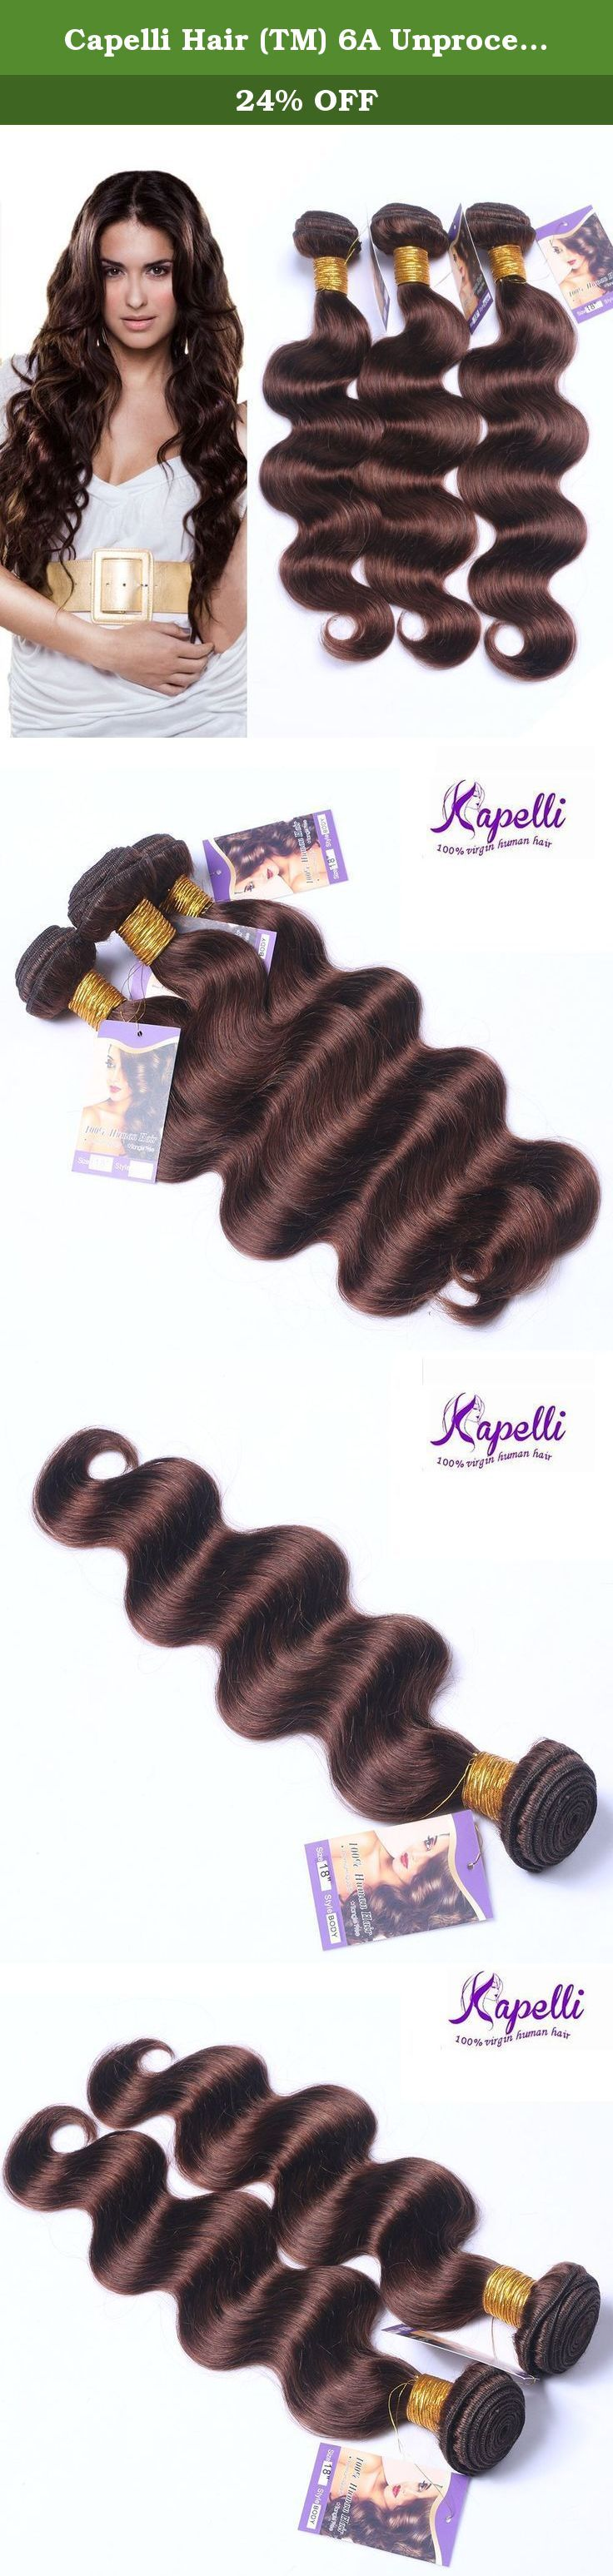 """Capelli Hair (TM) 6A Unprocessed Brazilian Body Wave 3 Bundles Brazilian Virgin Hair Human Hair Extensions Human Hair Weave(16"""" 18"""" 20""""). All of Capelli Hair is 100% human virgin hair. The hair is cut from the donor in one heavy ponytail, with the cuticle layers intact and all facing in the same direction so that the hair will not tangle. Every weft is with double layer for reinforced & minimum shedding. Hair Extension Type: Brazilian Body Wave Hair Quality: No Chemical No Shedding Tangle..."""